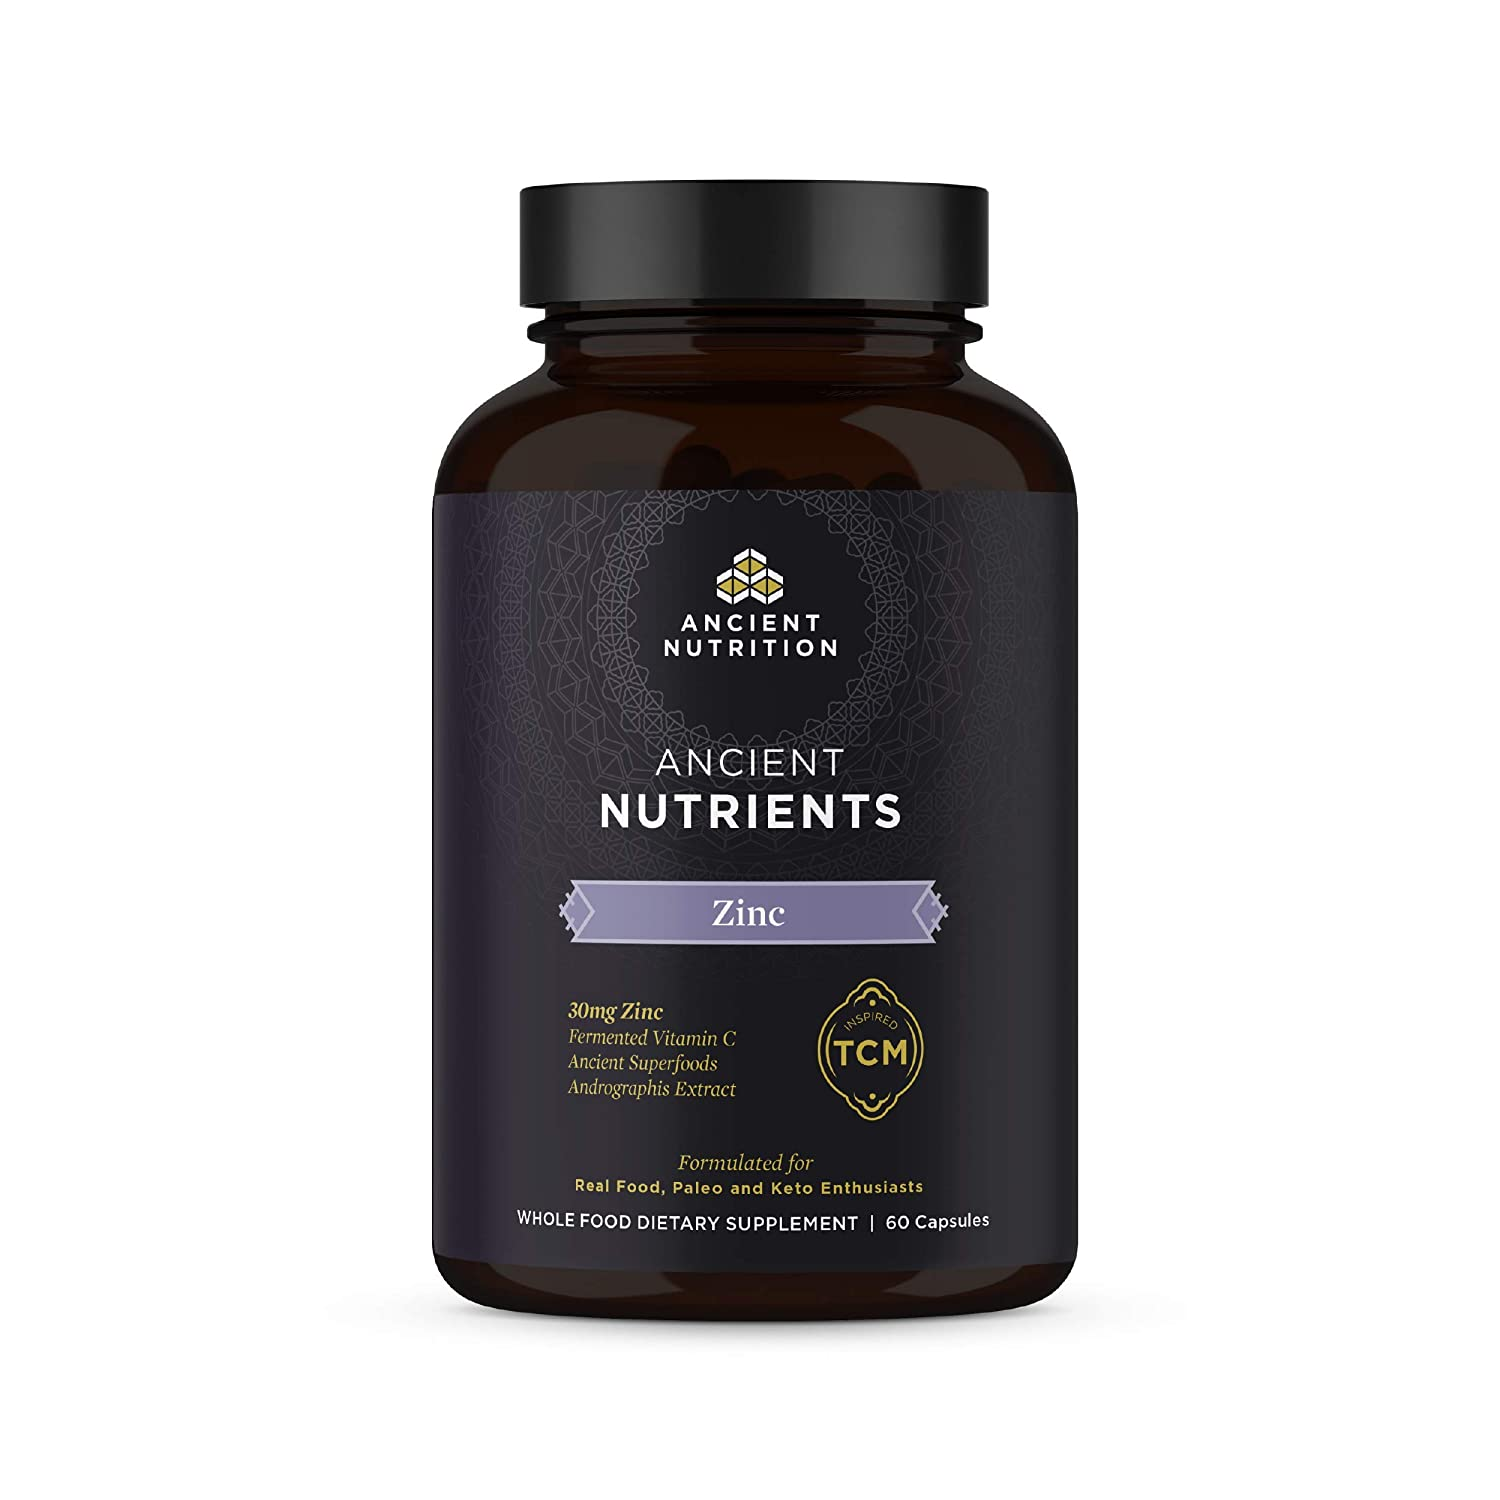 Ancient Nutrition, Ancient Nutrients Zinc - 30mg Zinc, Adaptogenic Herbs,  Enzyme Activated,